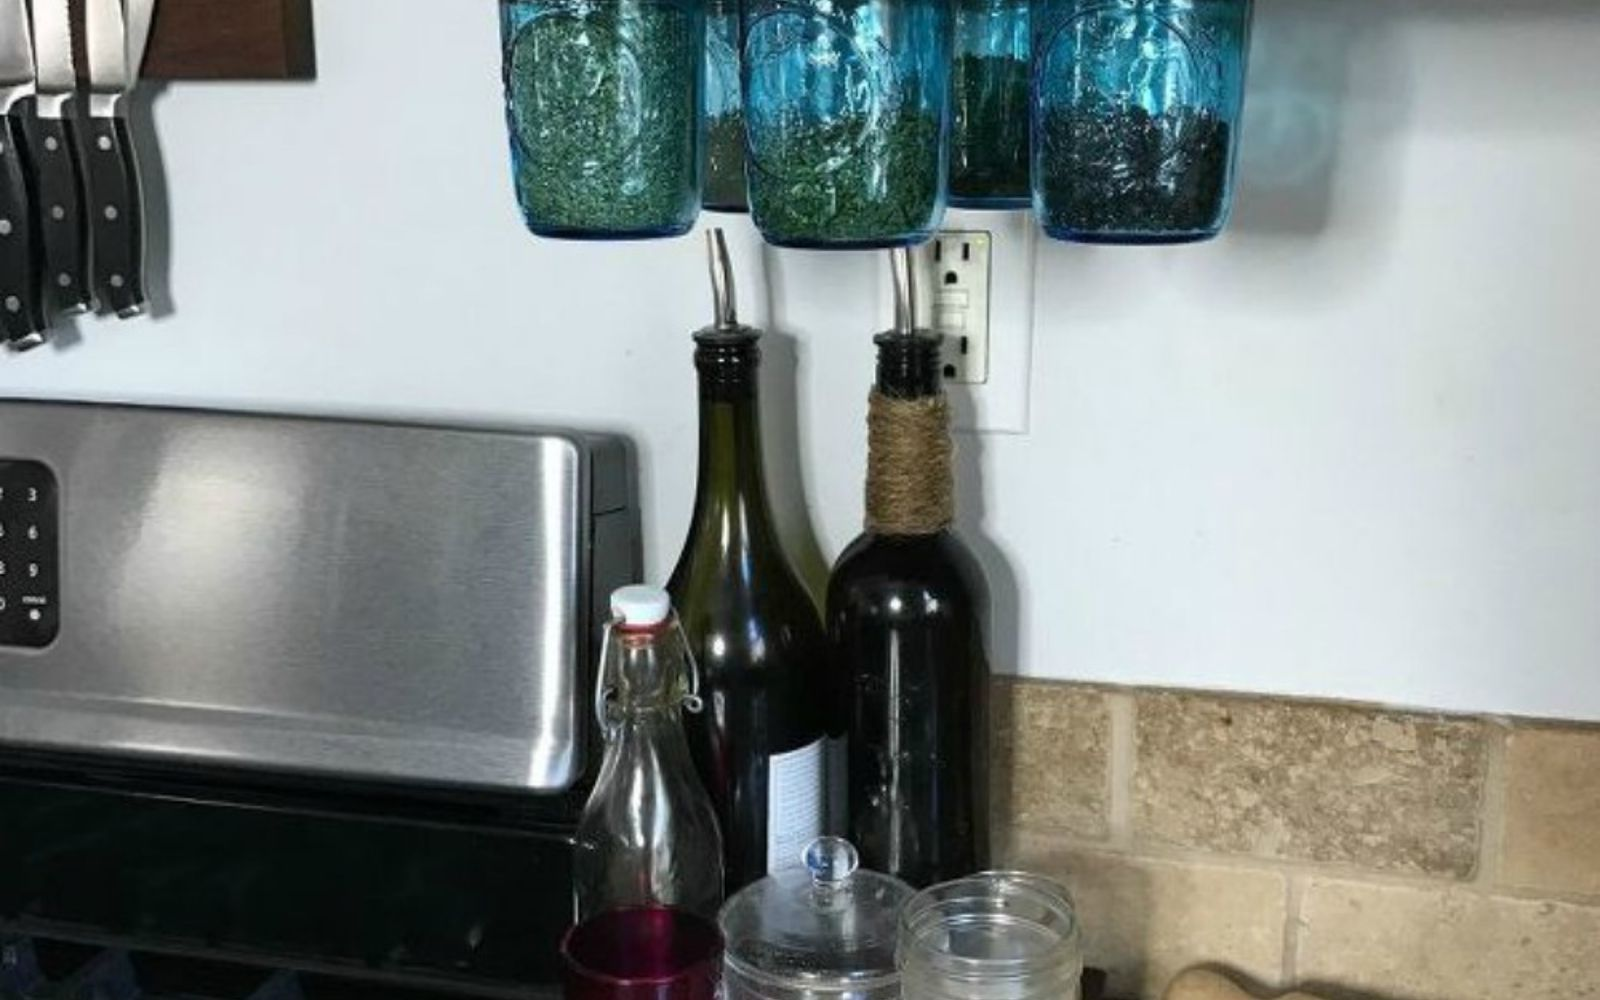 s get rid of kitchen countertop clutter with 13 clever mason jar ideas, countertops, kitchen design, mason jars, organizing, Pluck your dry spices from the cabinets